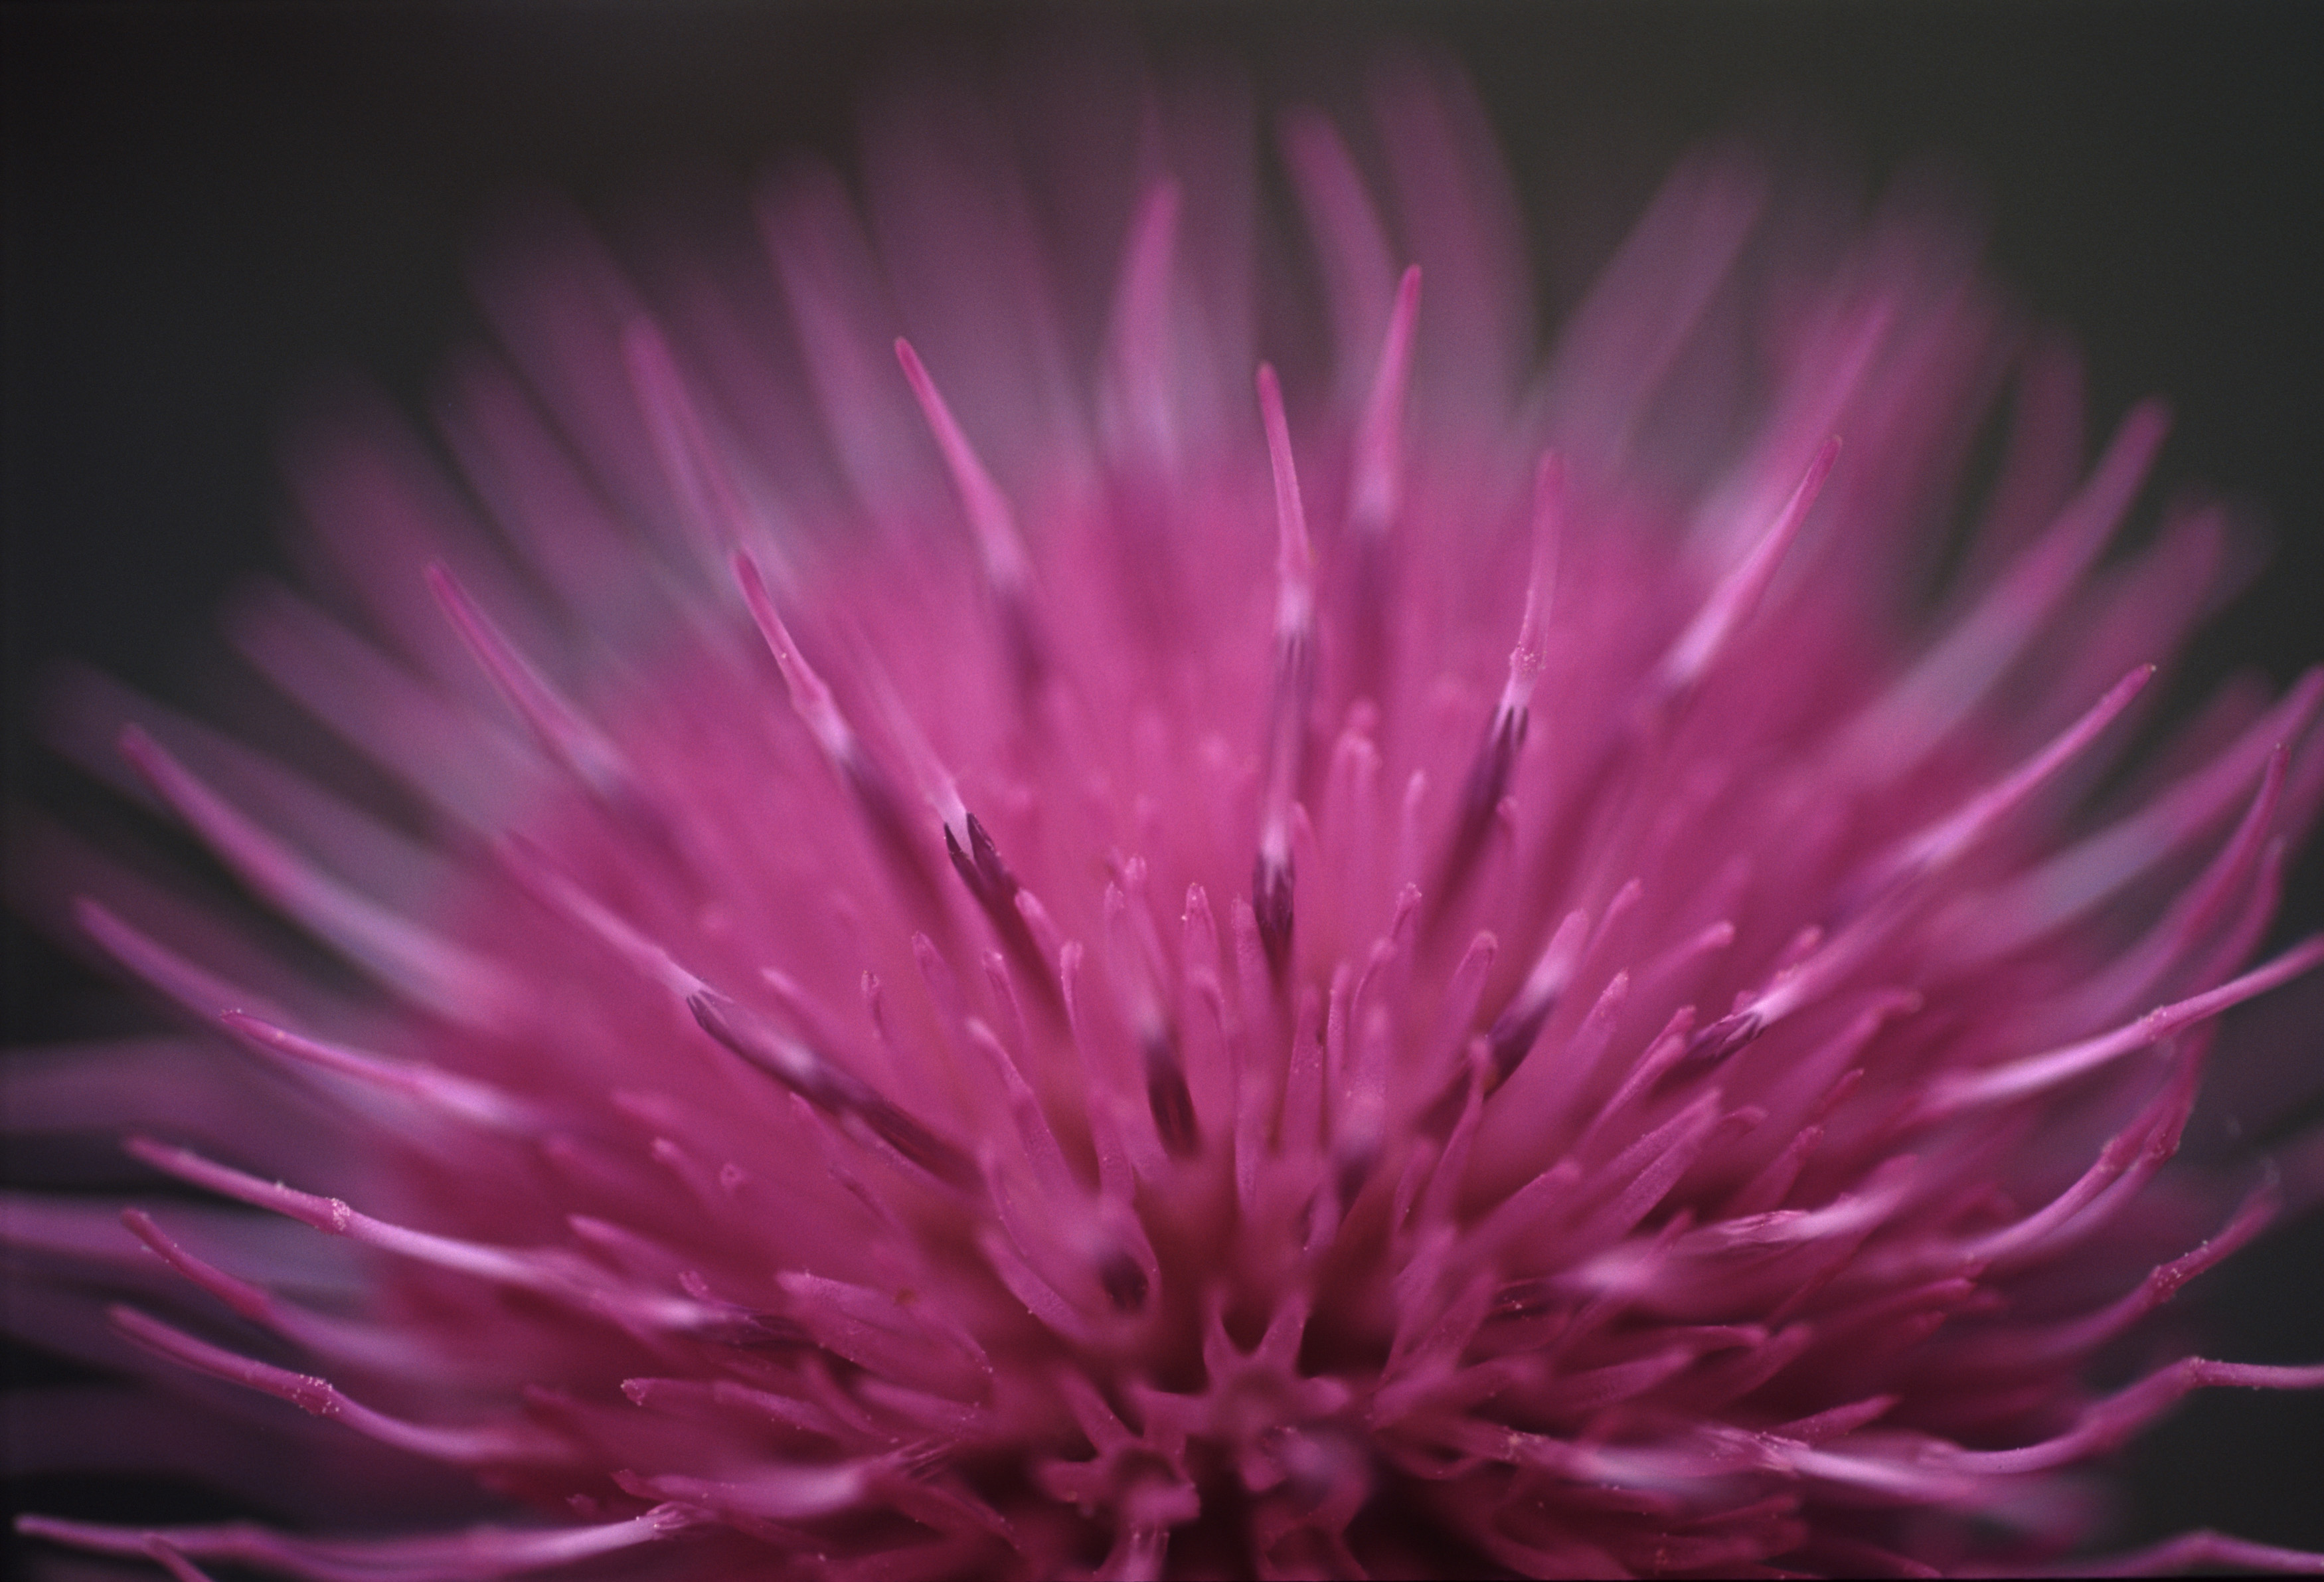 Close up detail with shallow DOF of a purple thistle flower over a dark background